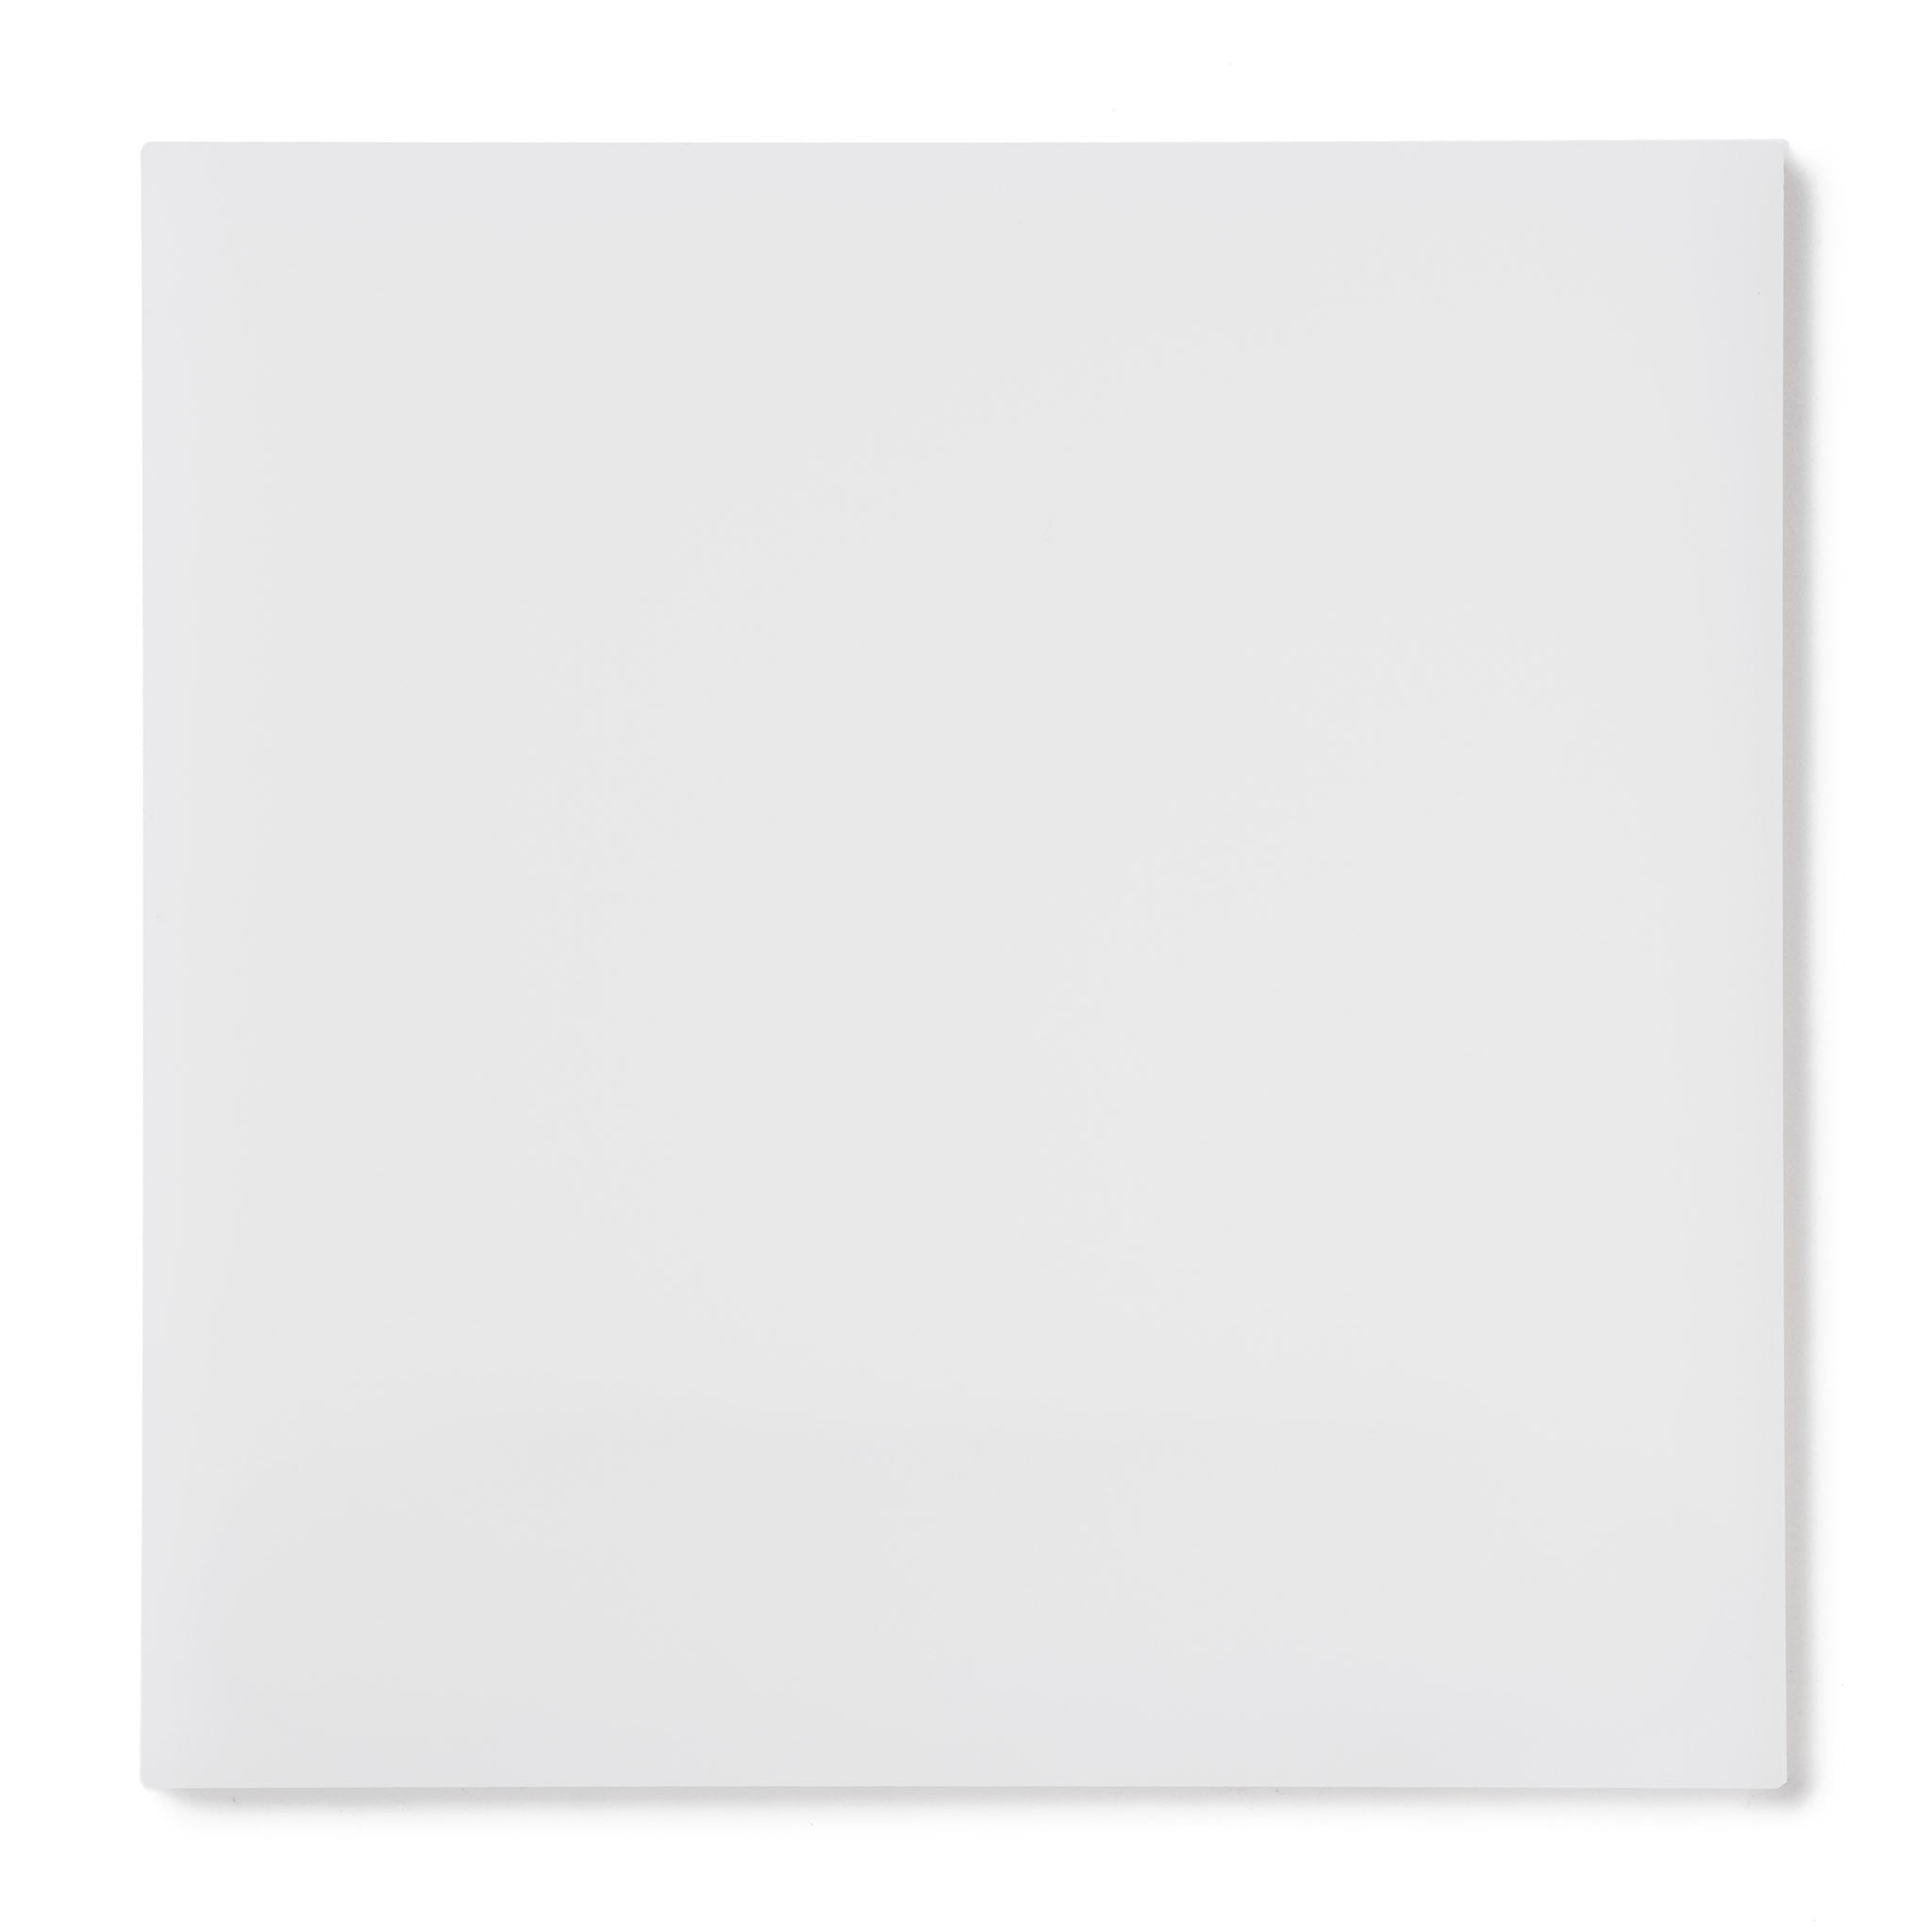 White Translucent Acrylic Plexiglass Sheet, color 2447